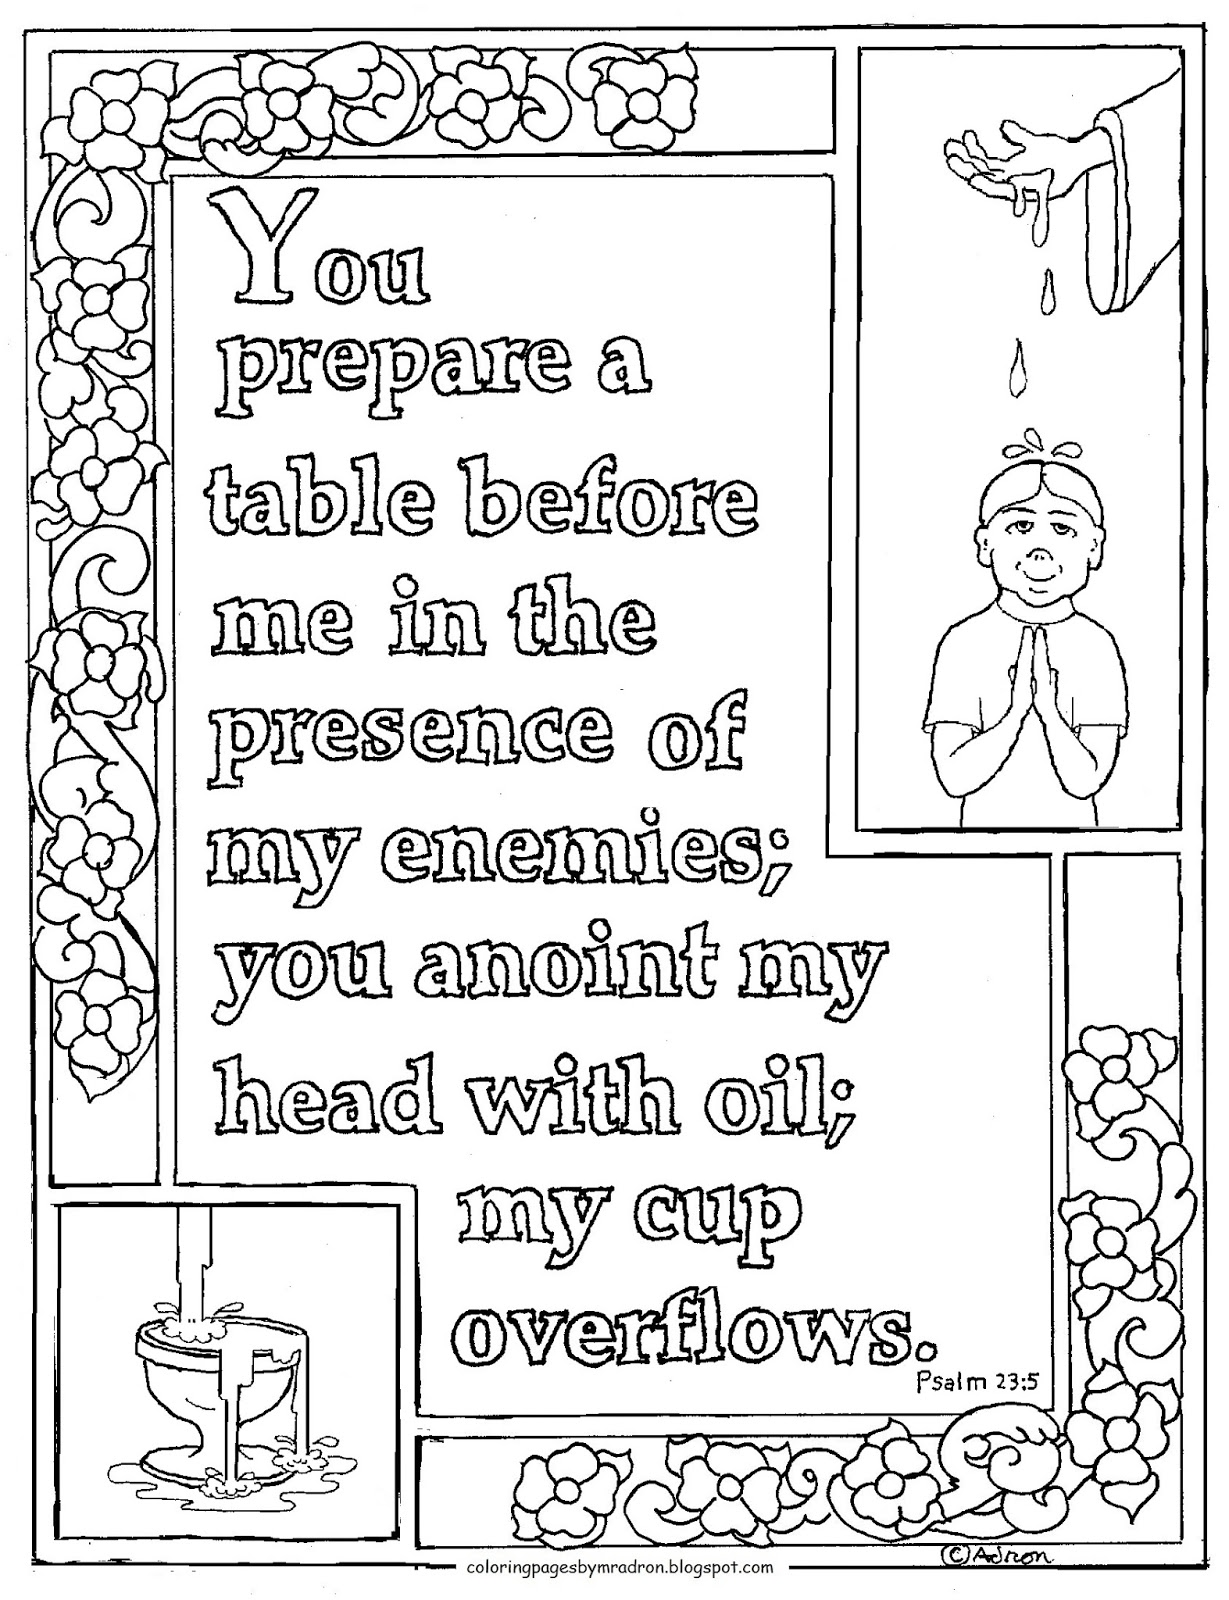 picture relating to Psalm 23 Printable identify Coloring Internet pages for Young children as a result of Mr. Adron: Printable Psalm 23:5